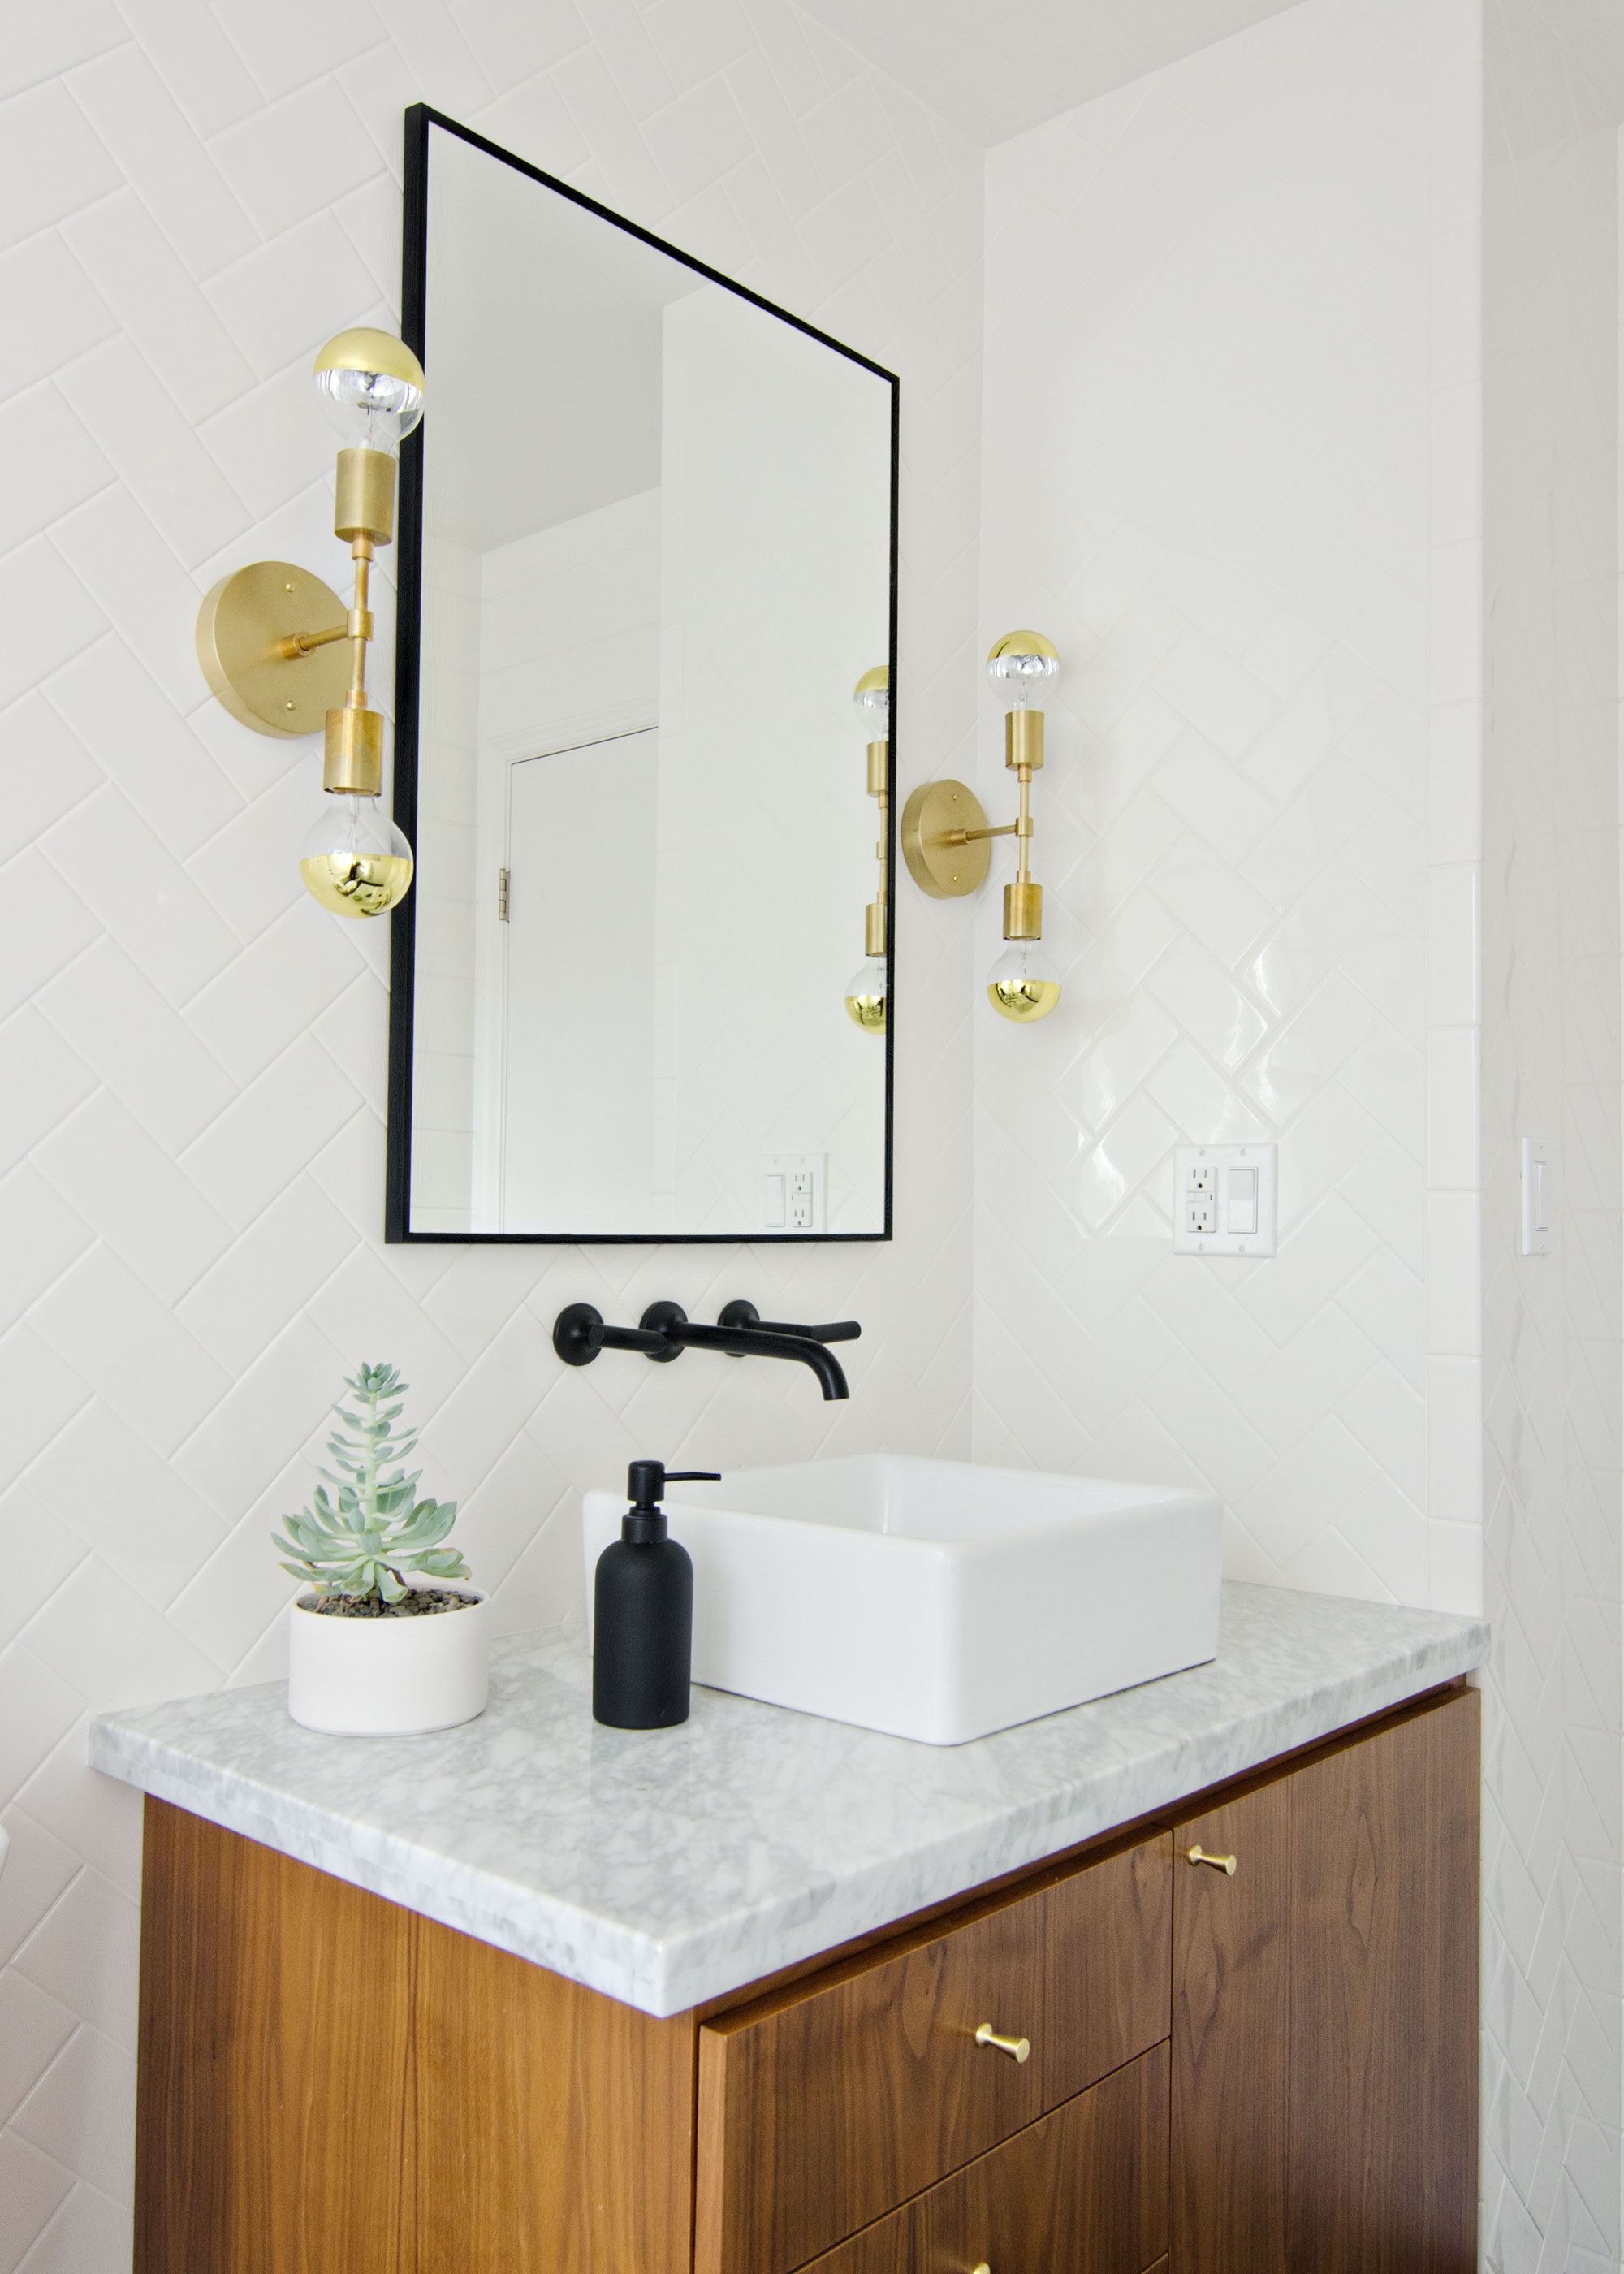 your three this best with look lights right sconces what vanity bathroom the love gallery i wall emily hotel splendid for tips marvelous lighting dazzling lamp to brass g attachment of sconce lantern henderson interesting install modern